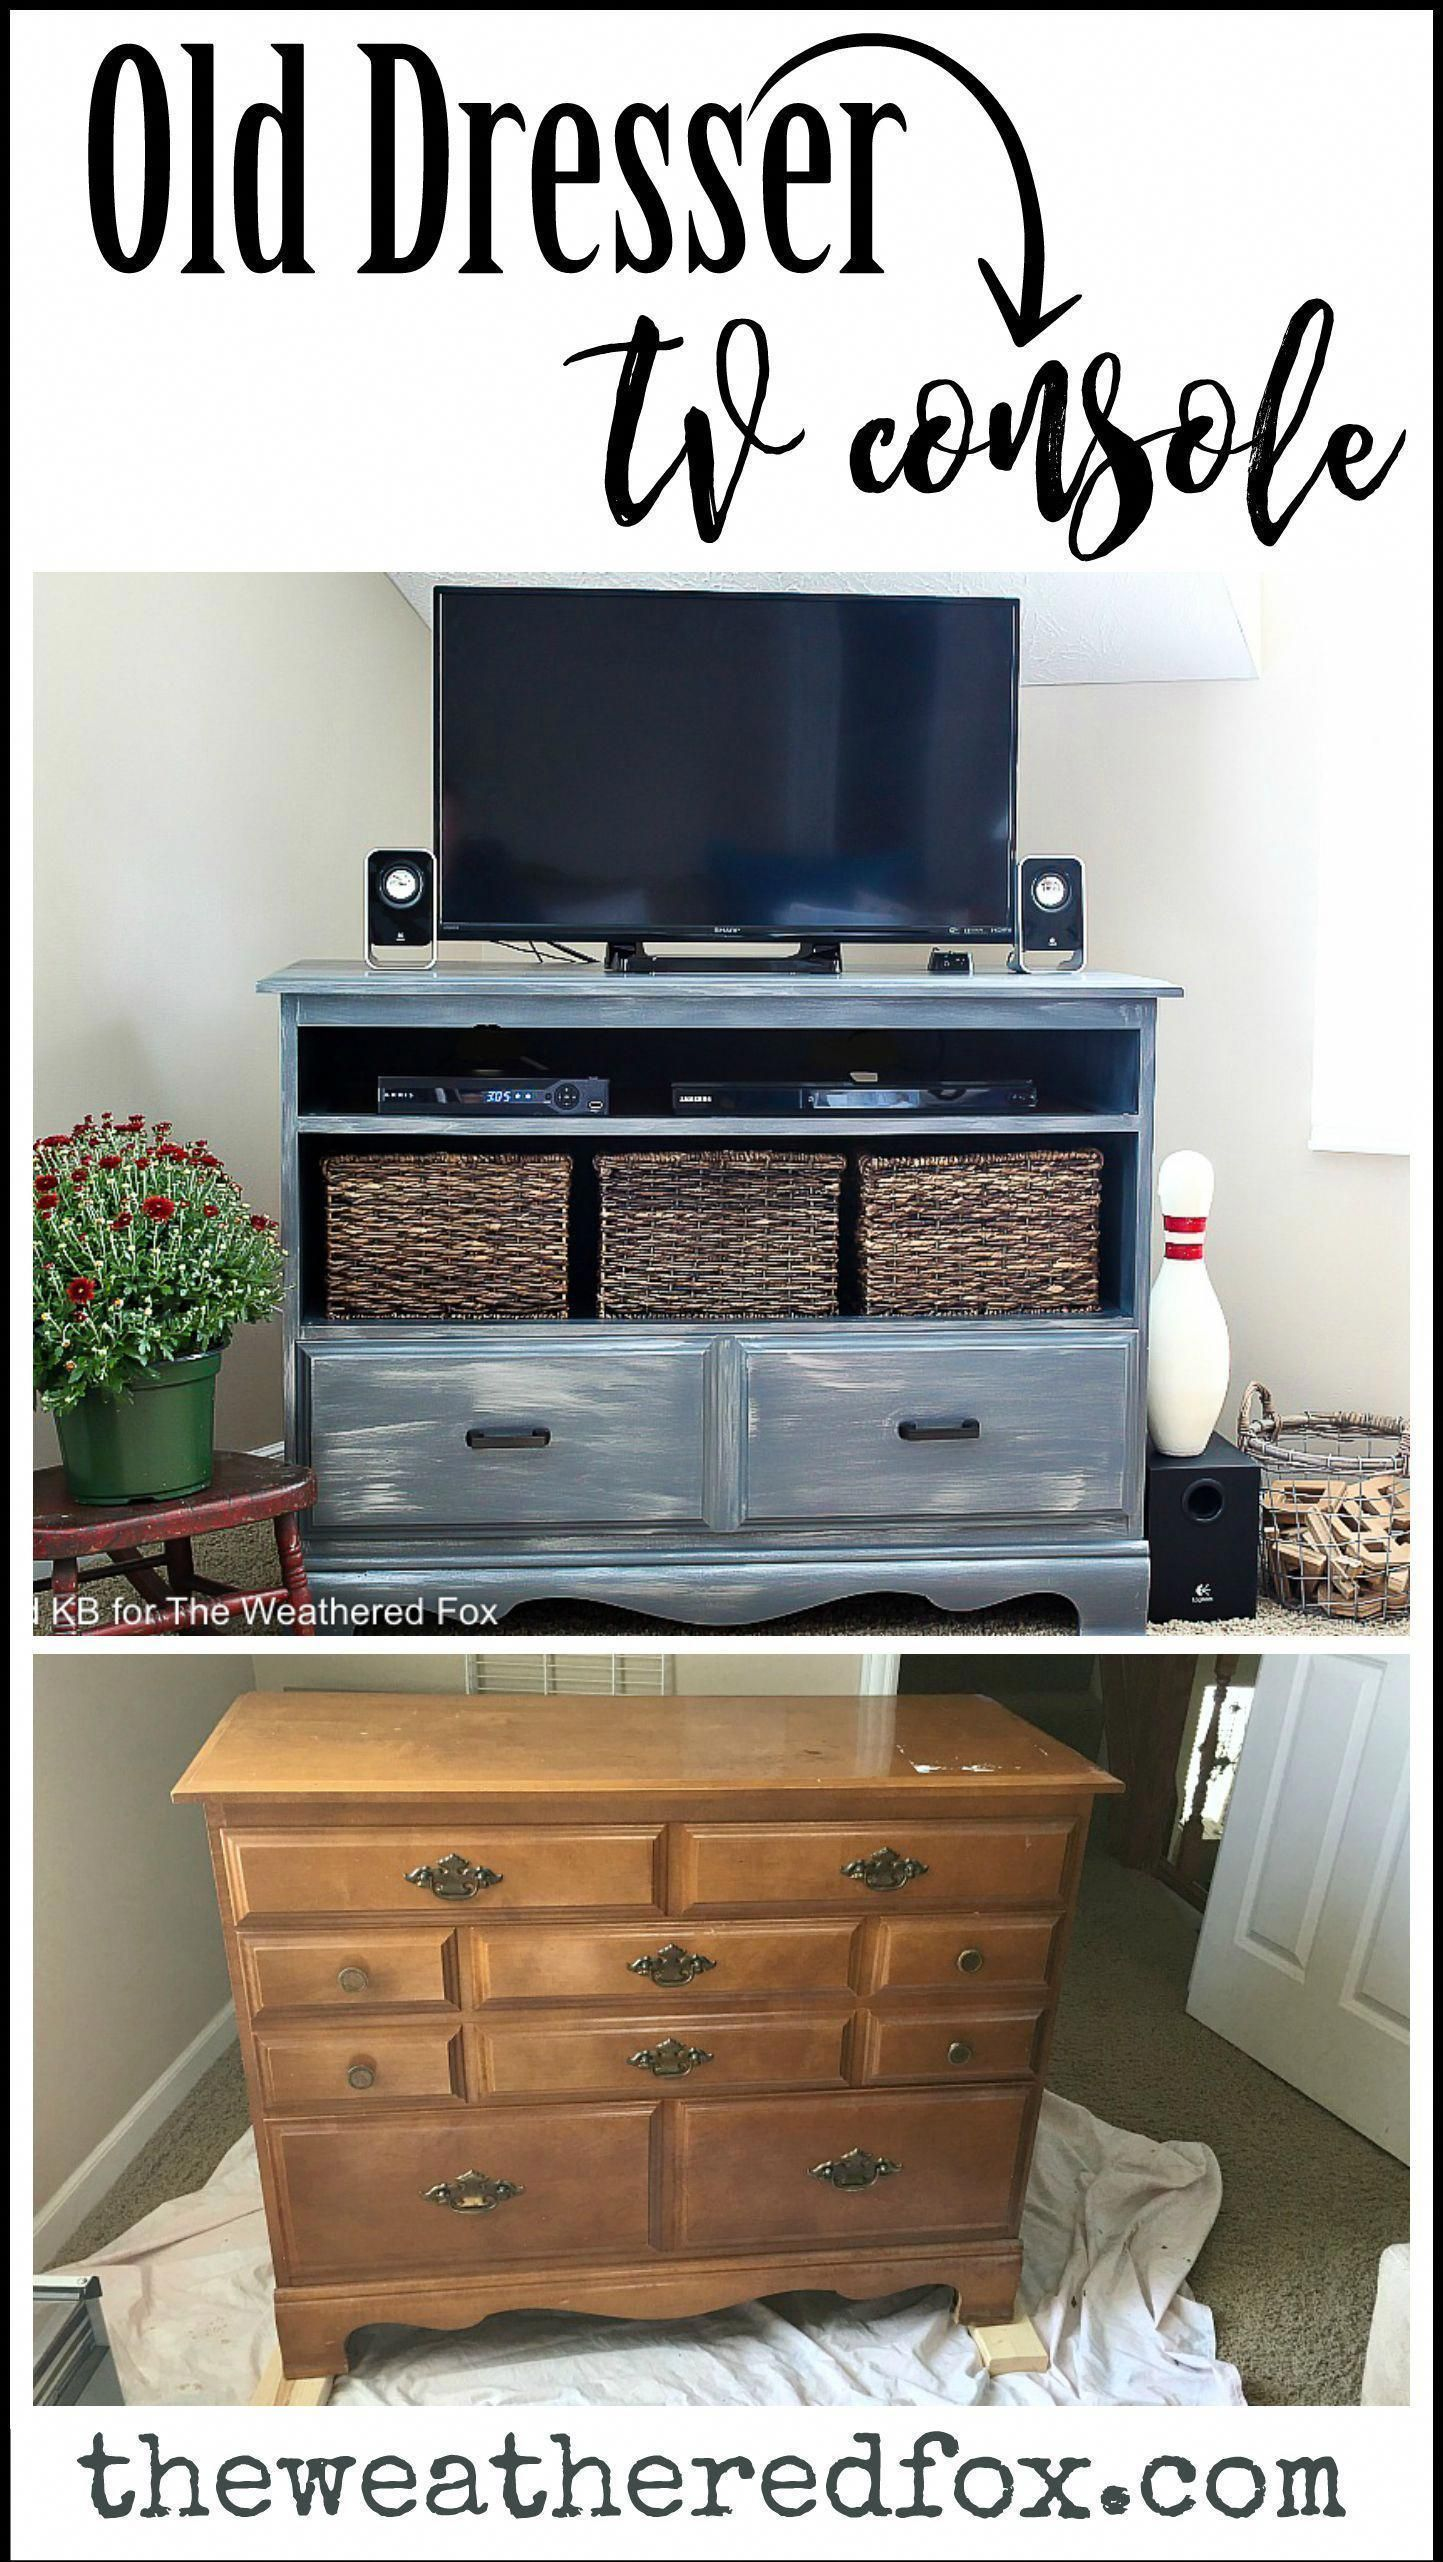 Tv Console Diy From Old Dresser Guest Post From Reinvented Swivel